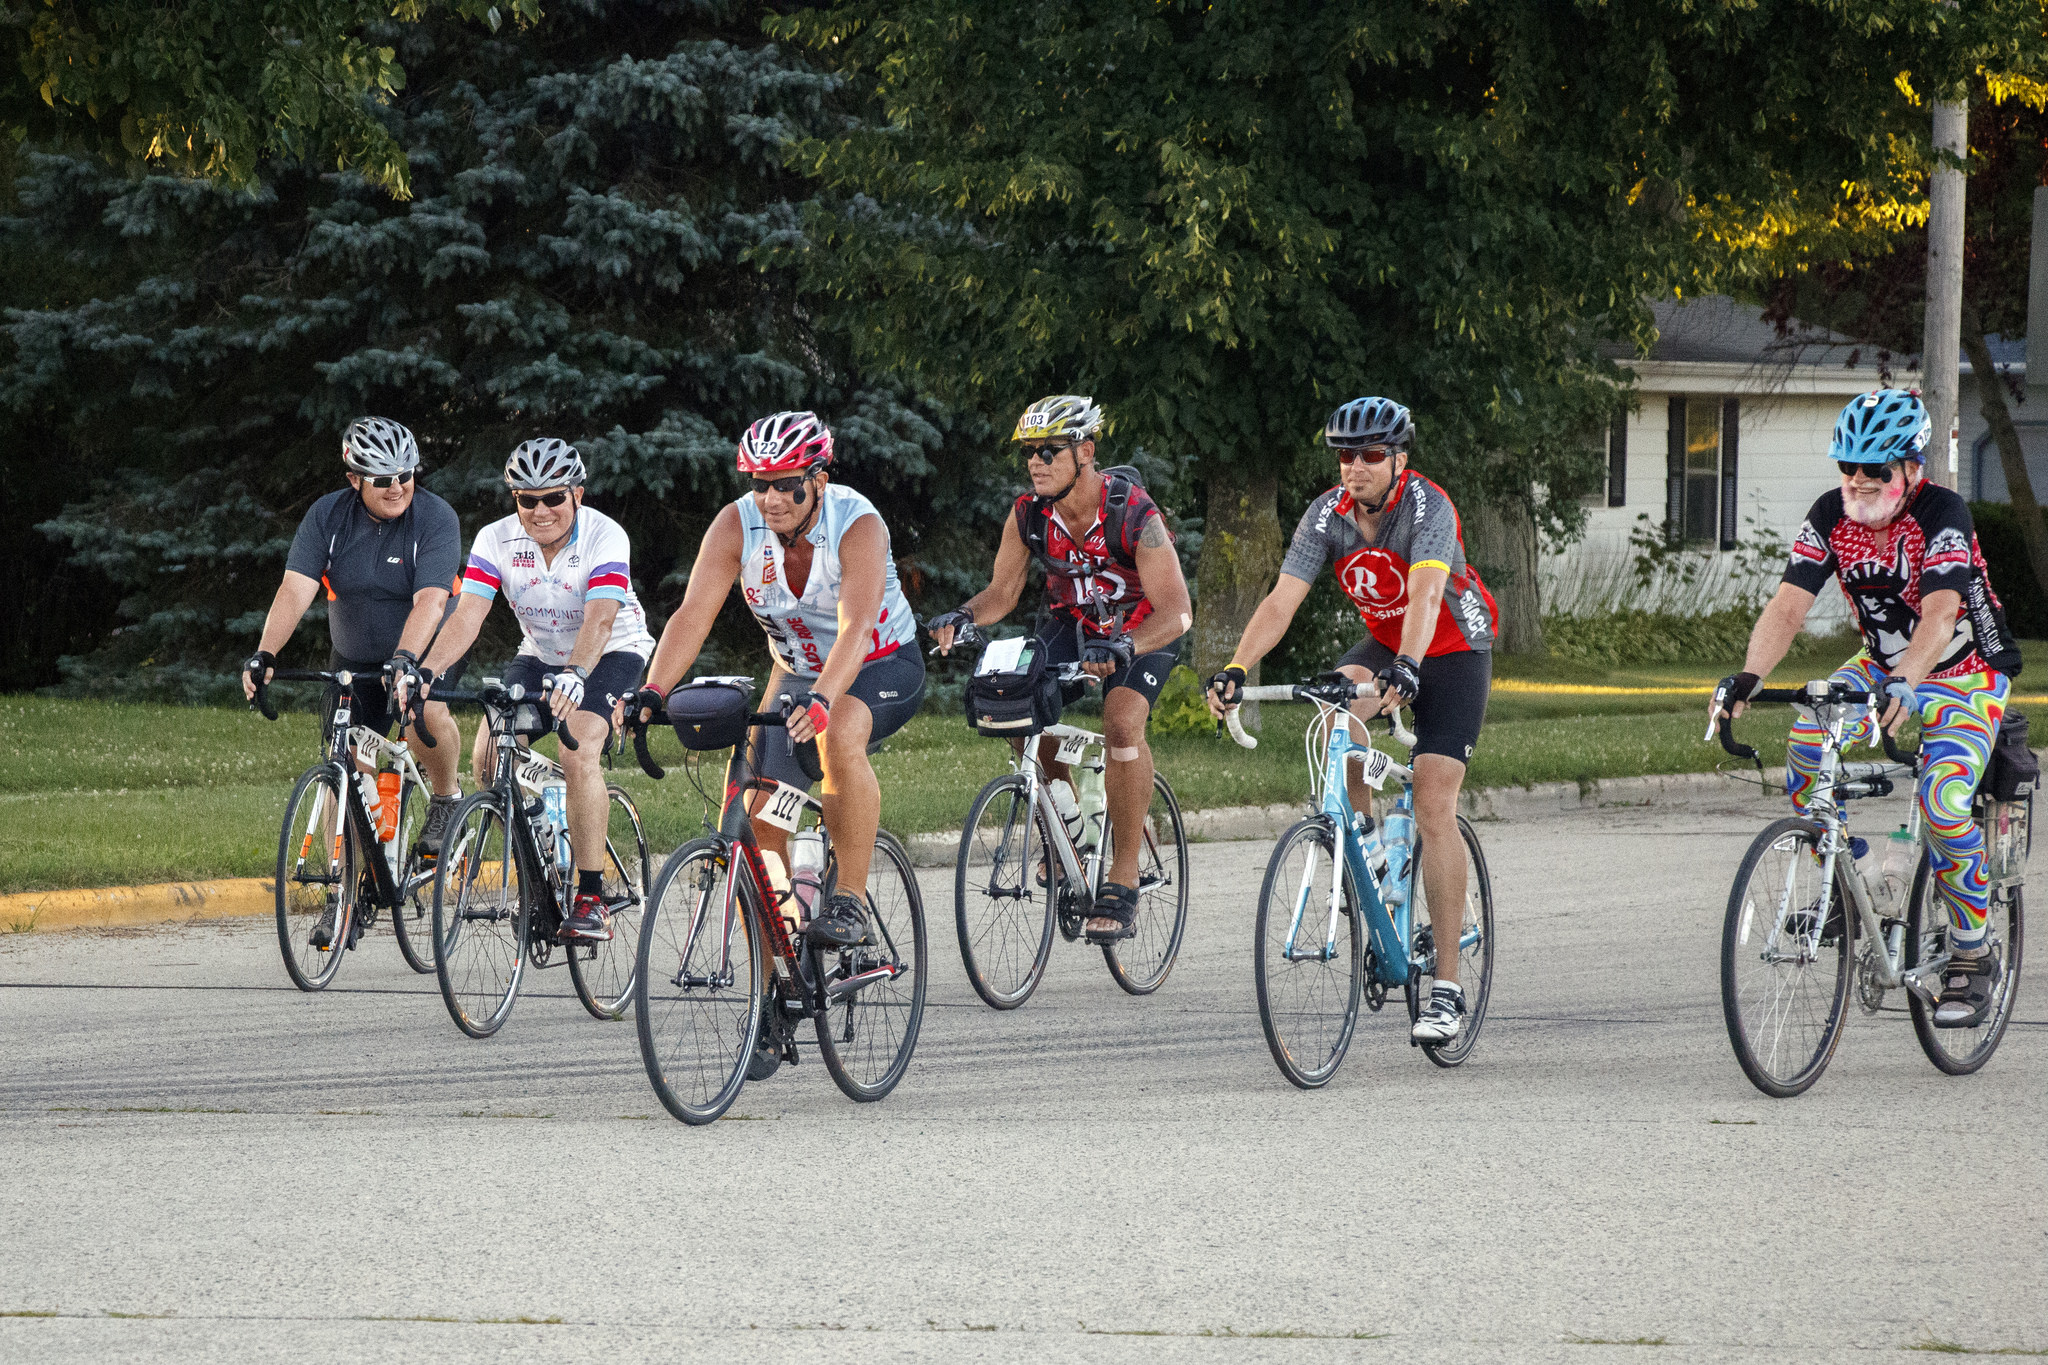 wis aids ride 2016 riders in a row day 3.jpg